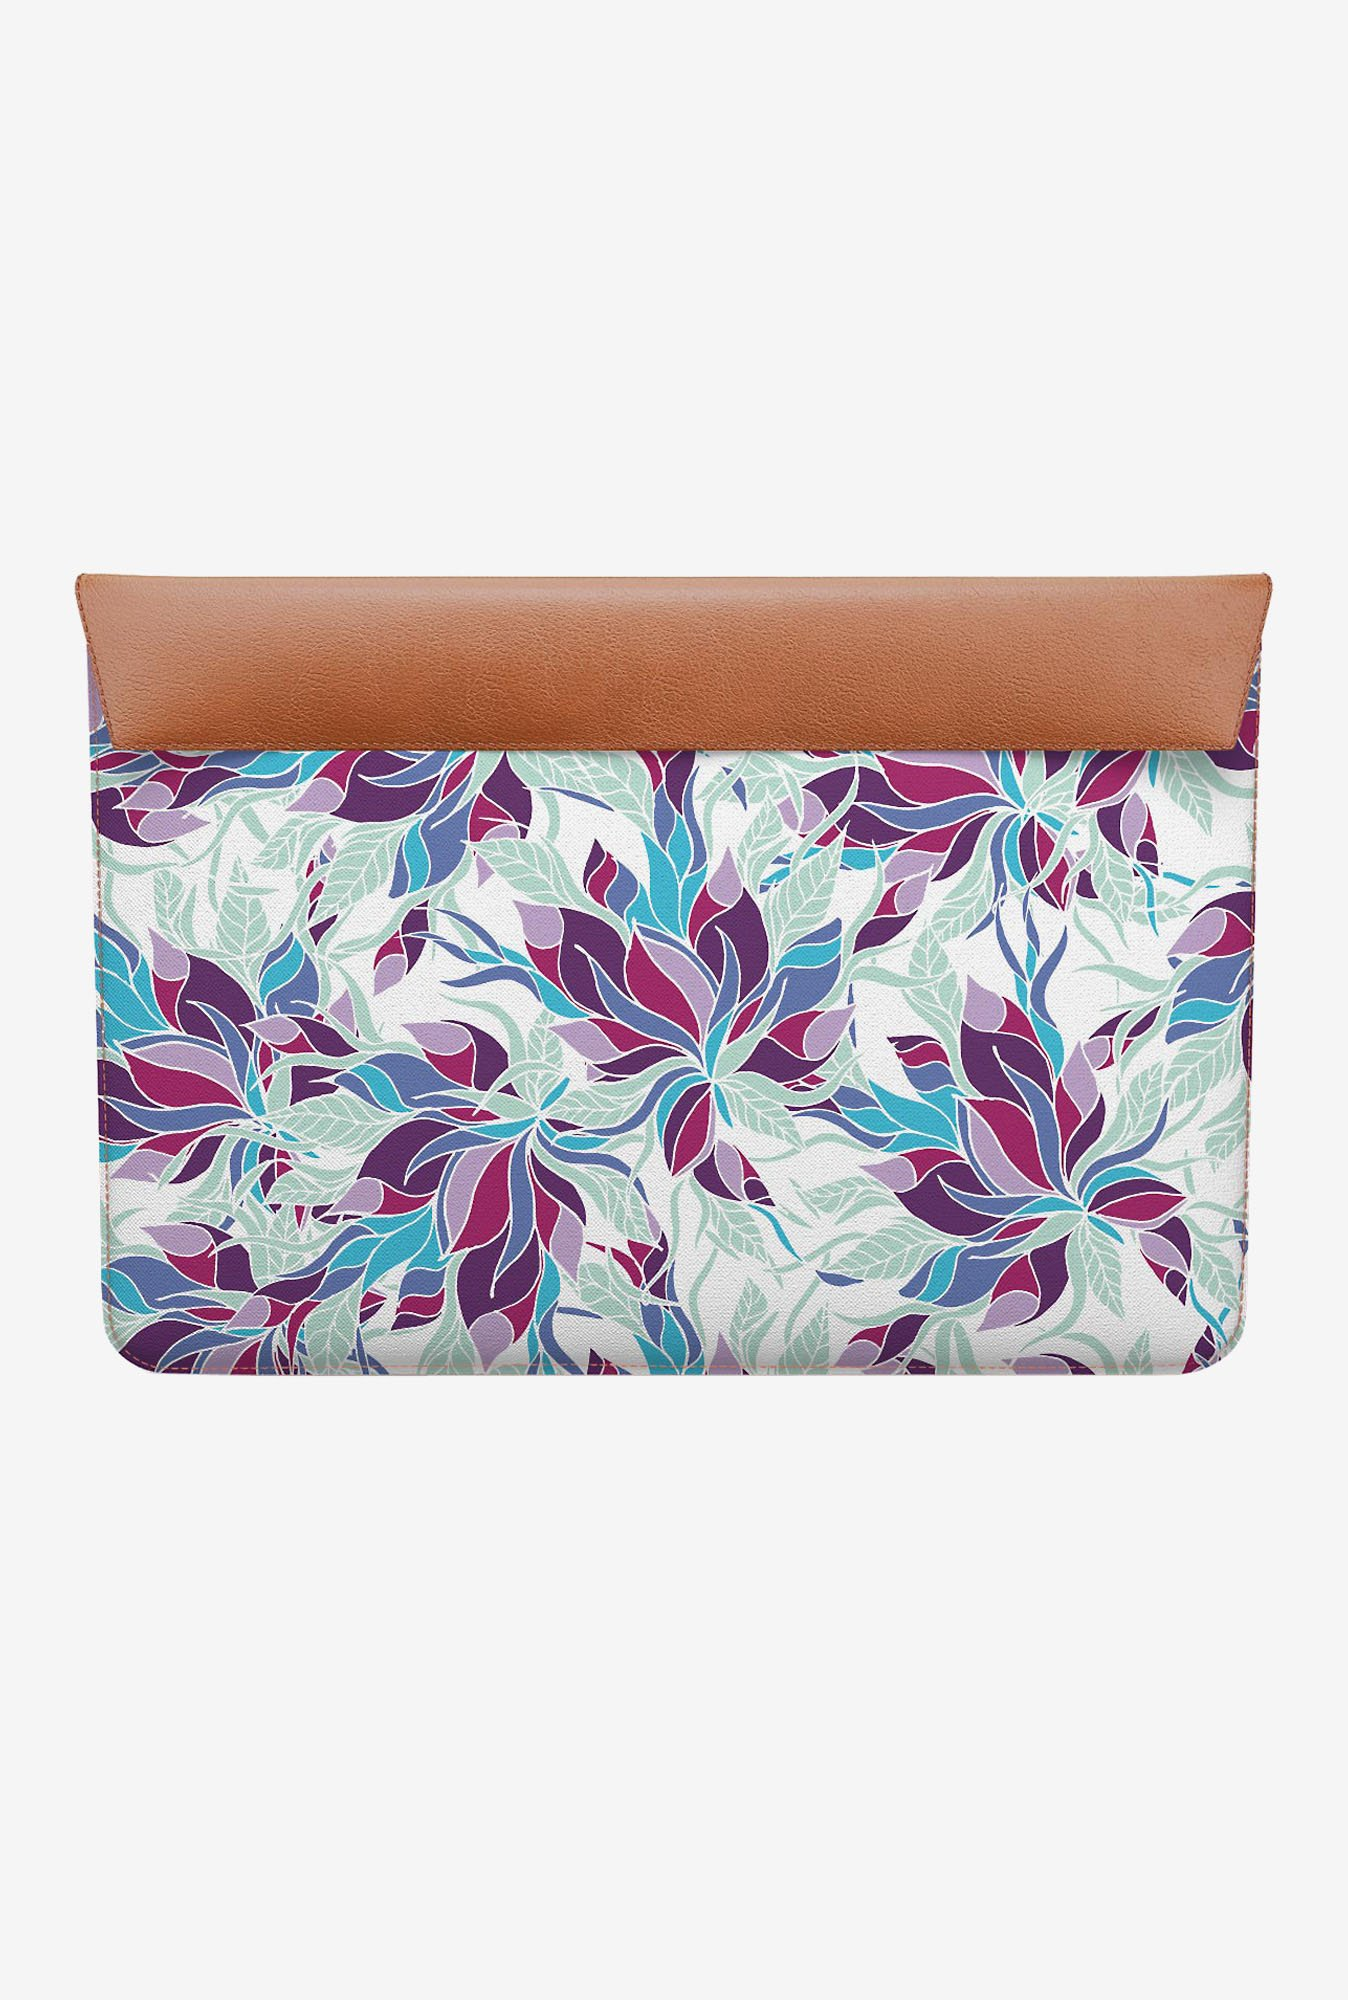 DailyObjects Fall Floral MacBook Air 13 Envelope Sleeve